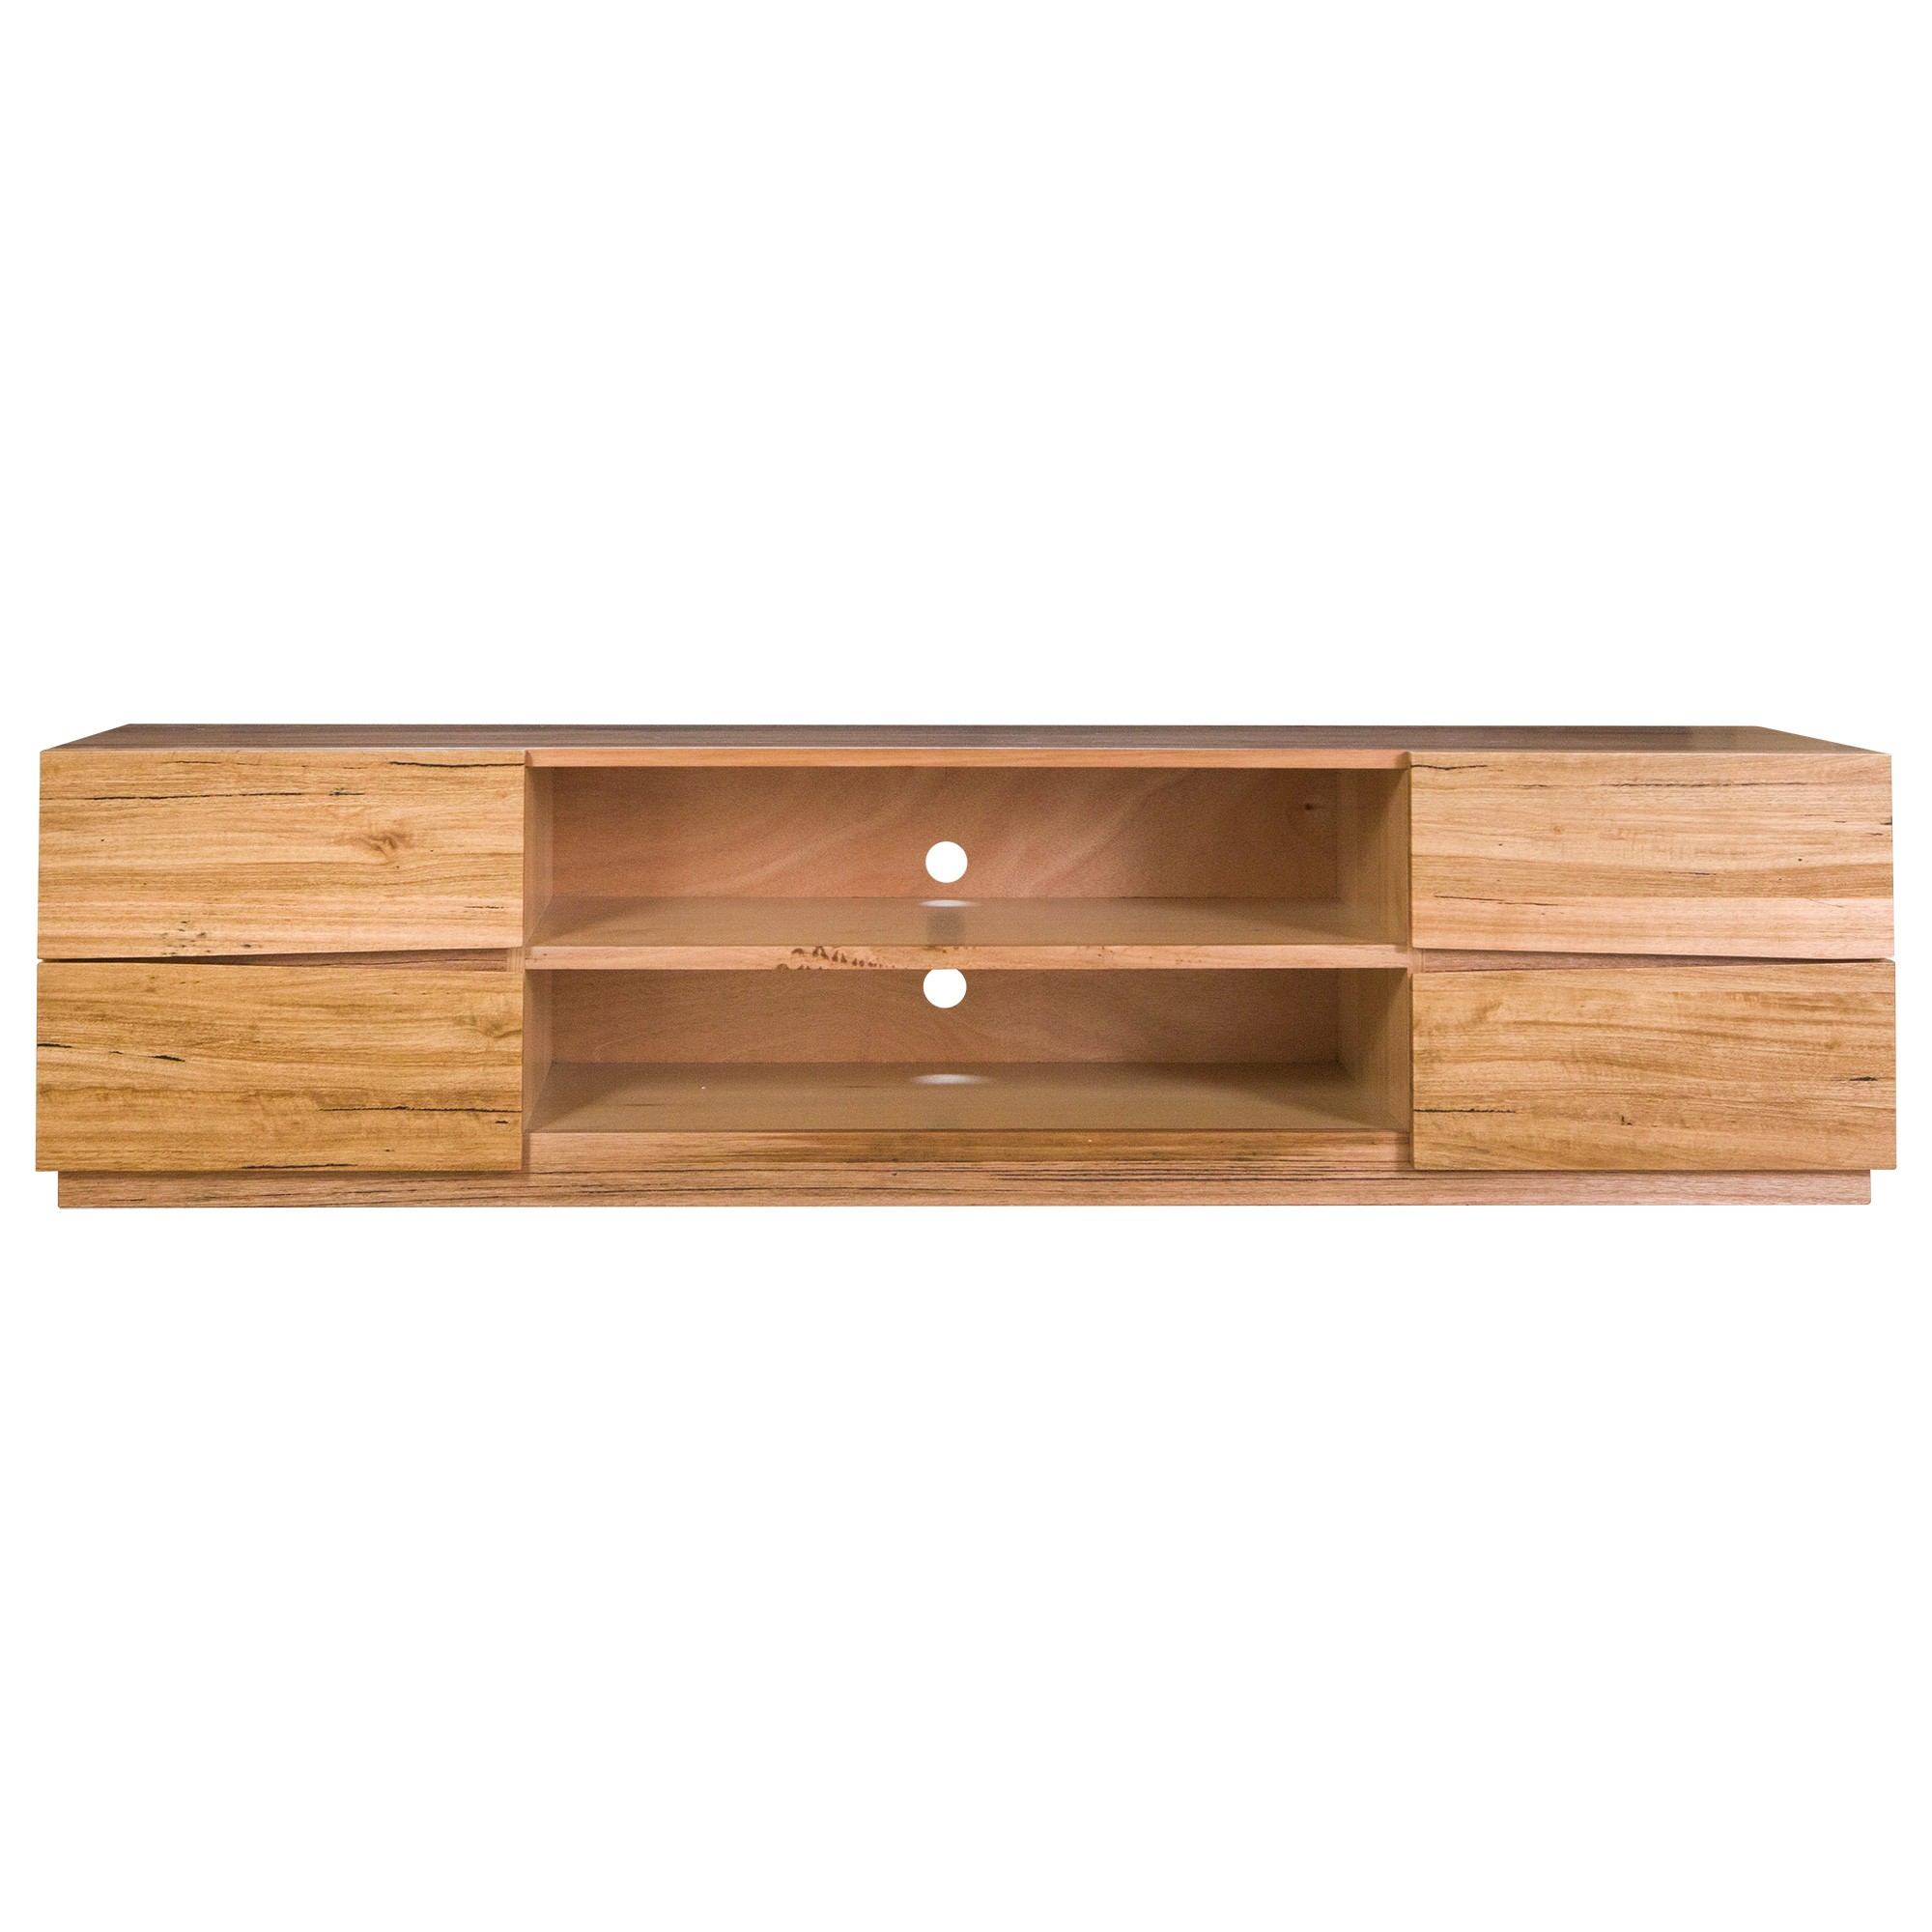 Cameron Tasmanian Oak Timber 4 Drawer TV Unit, 200cm, Natural